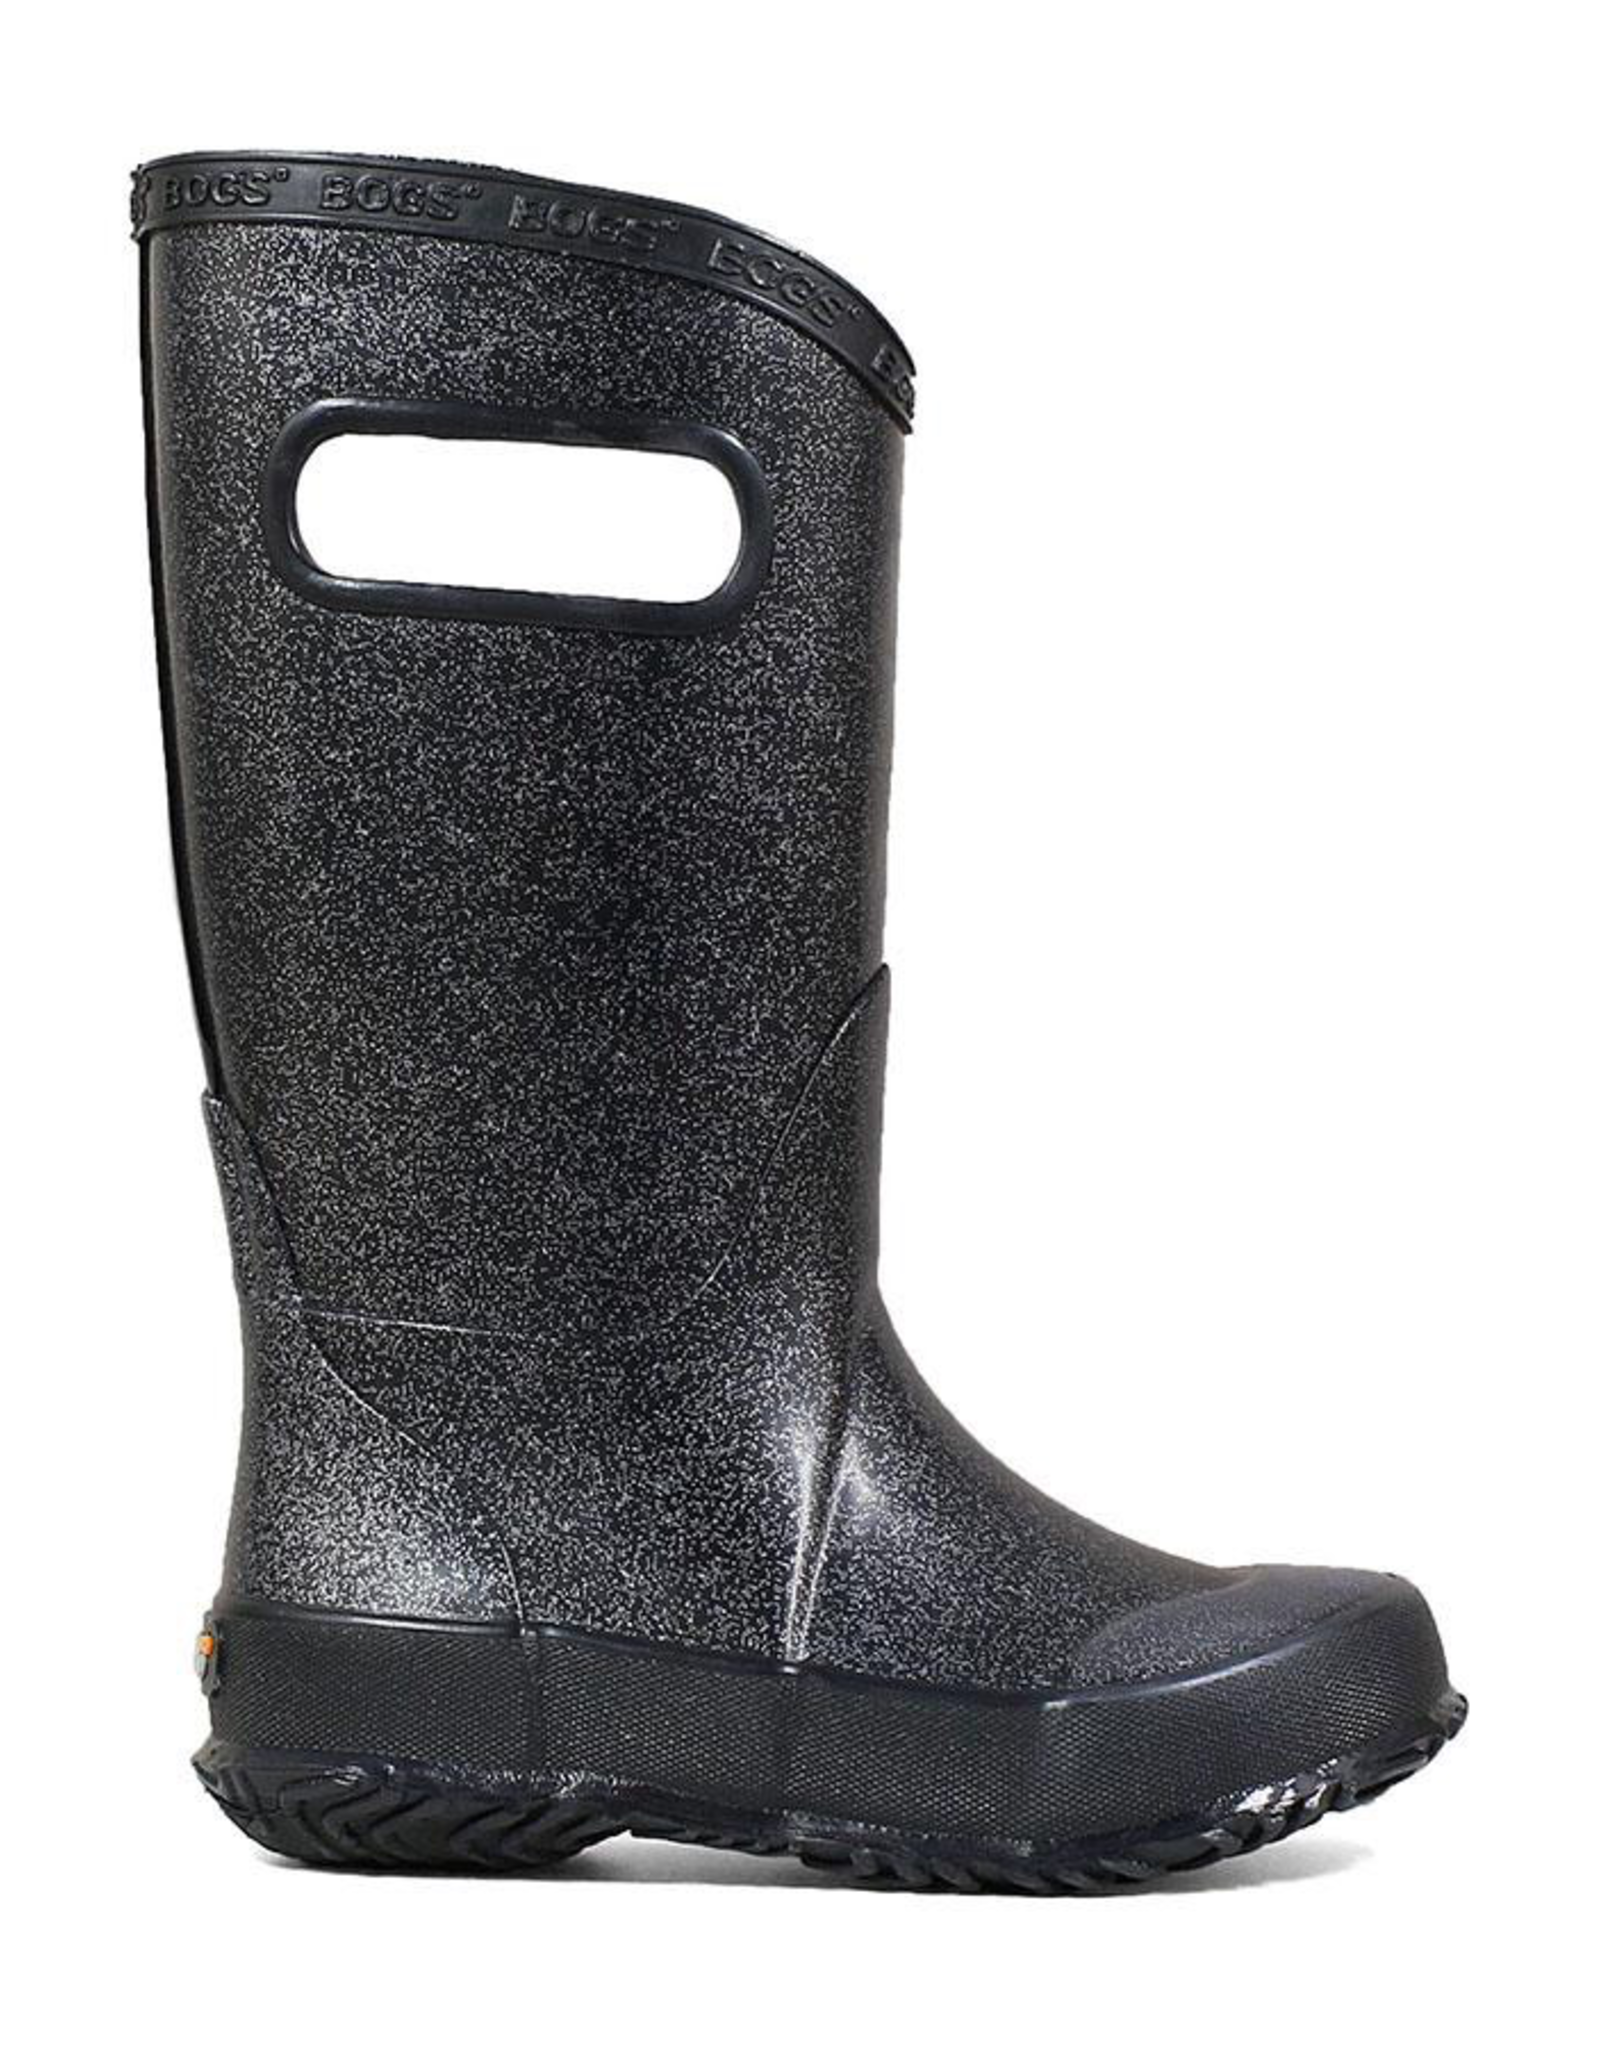 Bogs Kids' Classic Solid Black Insulated Boots